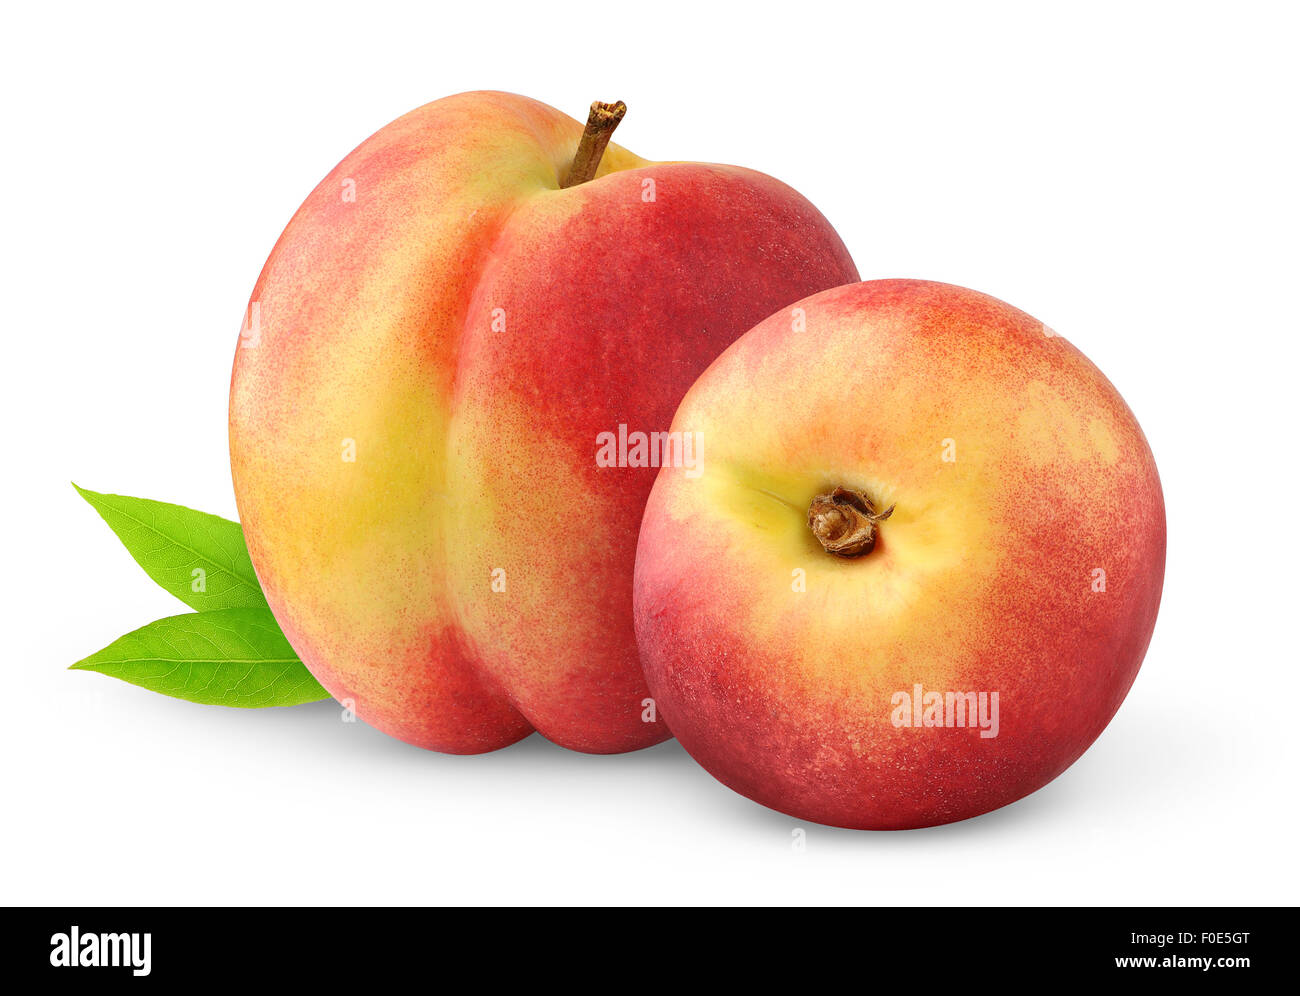 Two peaches isolated on white - Stock Image